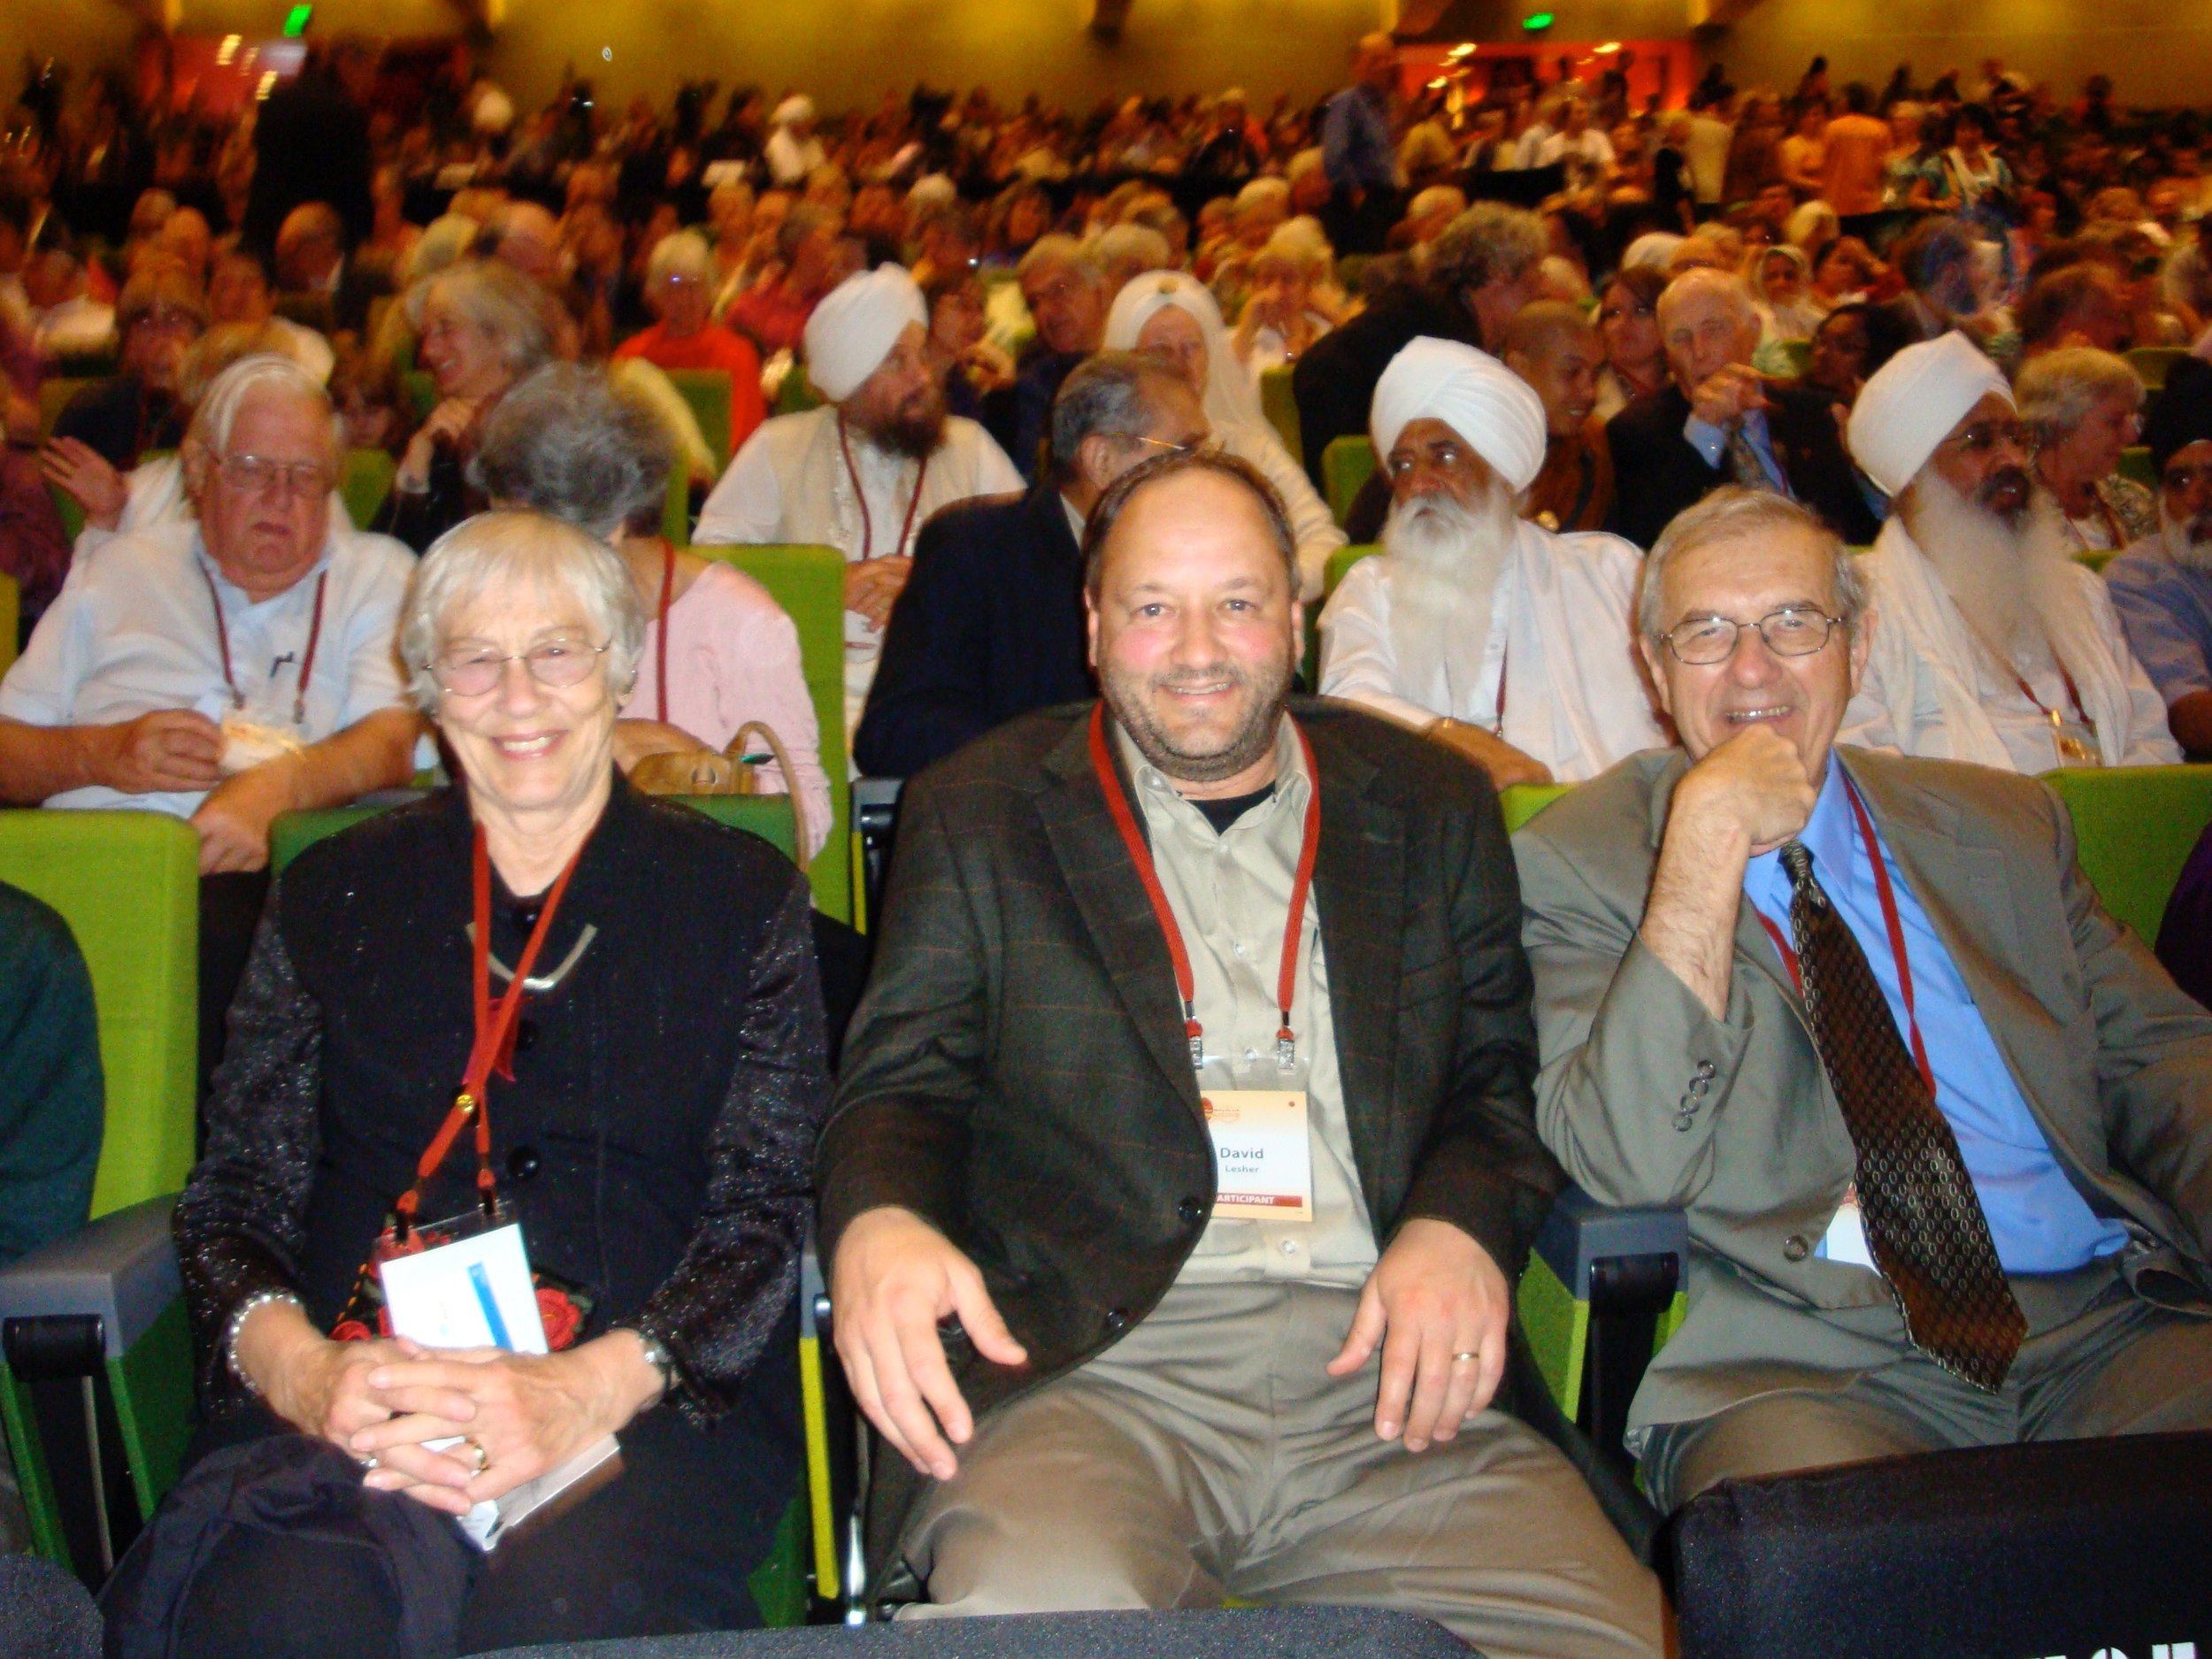 Jean and Bill Lesher's son David sits between them at a program during the 2009 Parliament in Melbourne – Photo: the Leshers